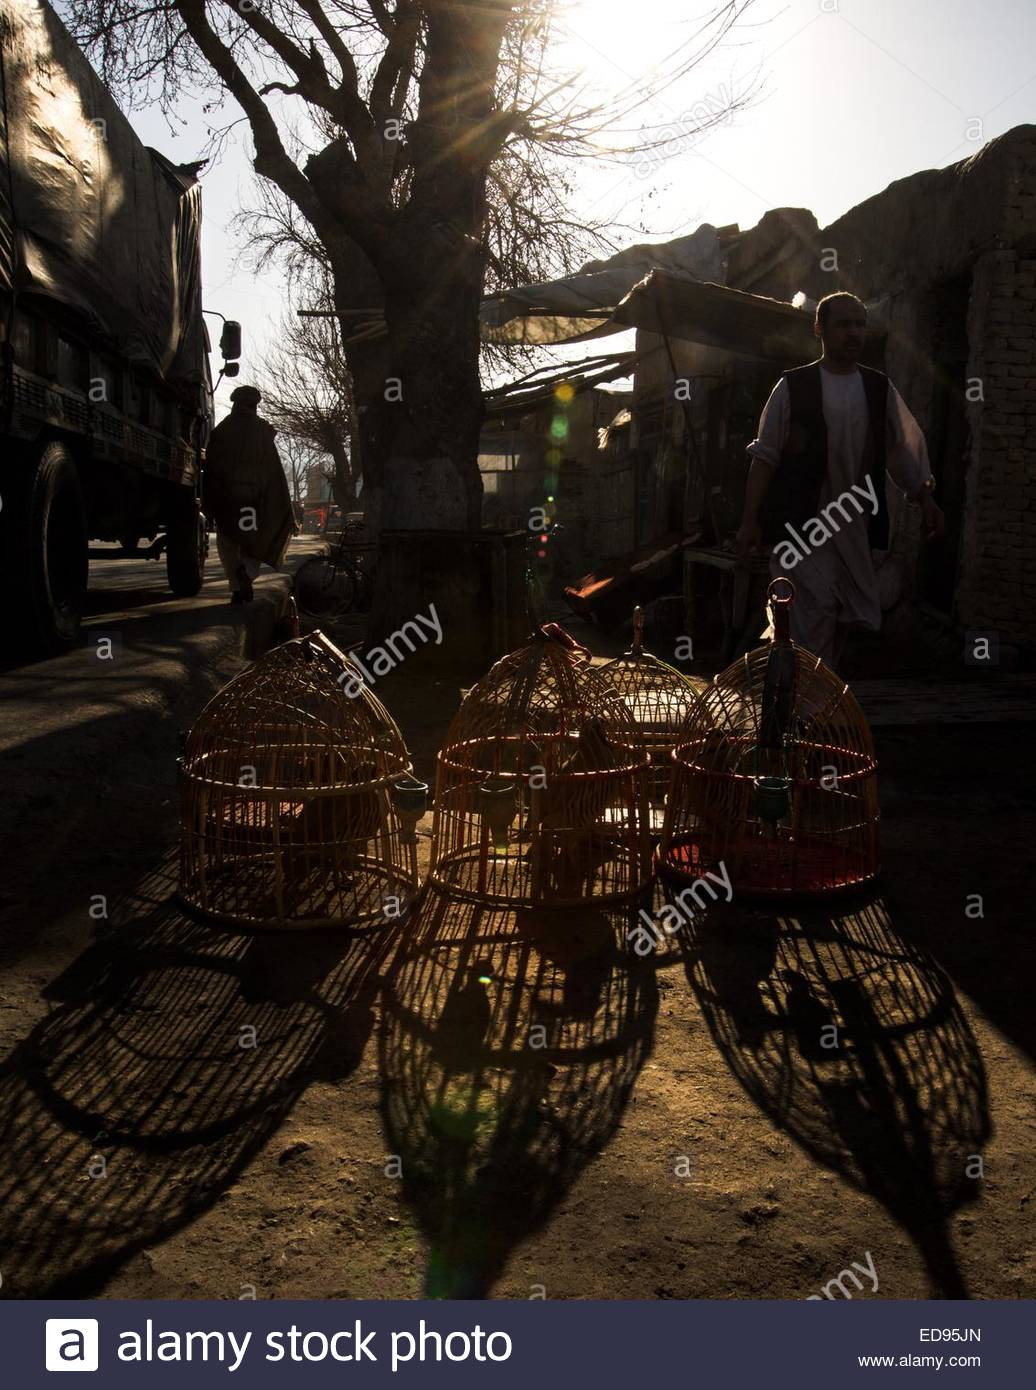 Partridges in cages for sale on the streets of Northern Afghanistan. The birds are popular for use in fighting for - Stock Image